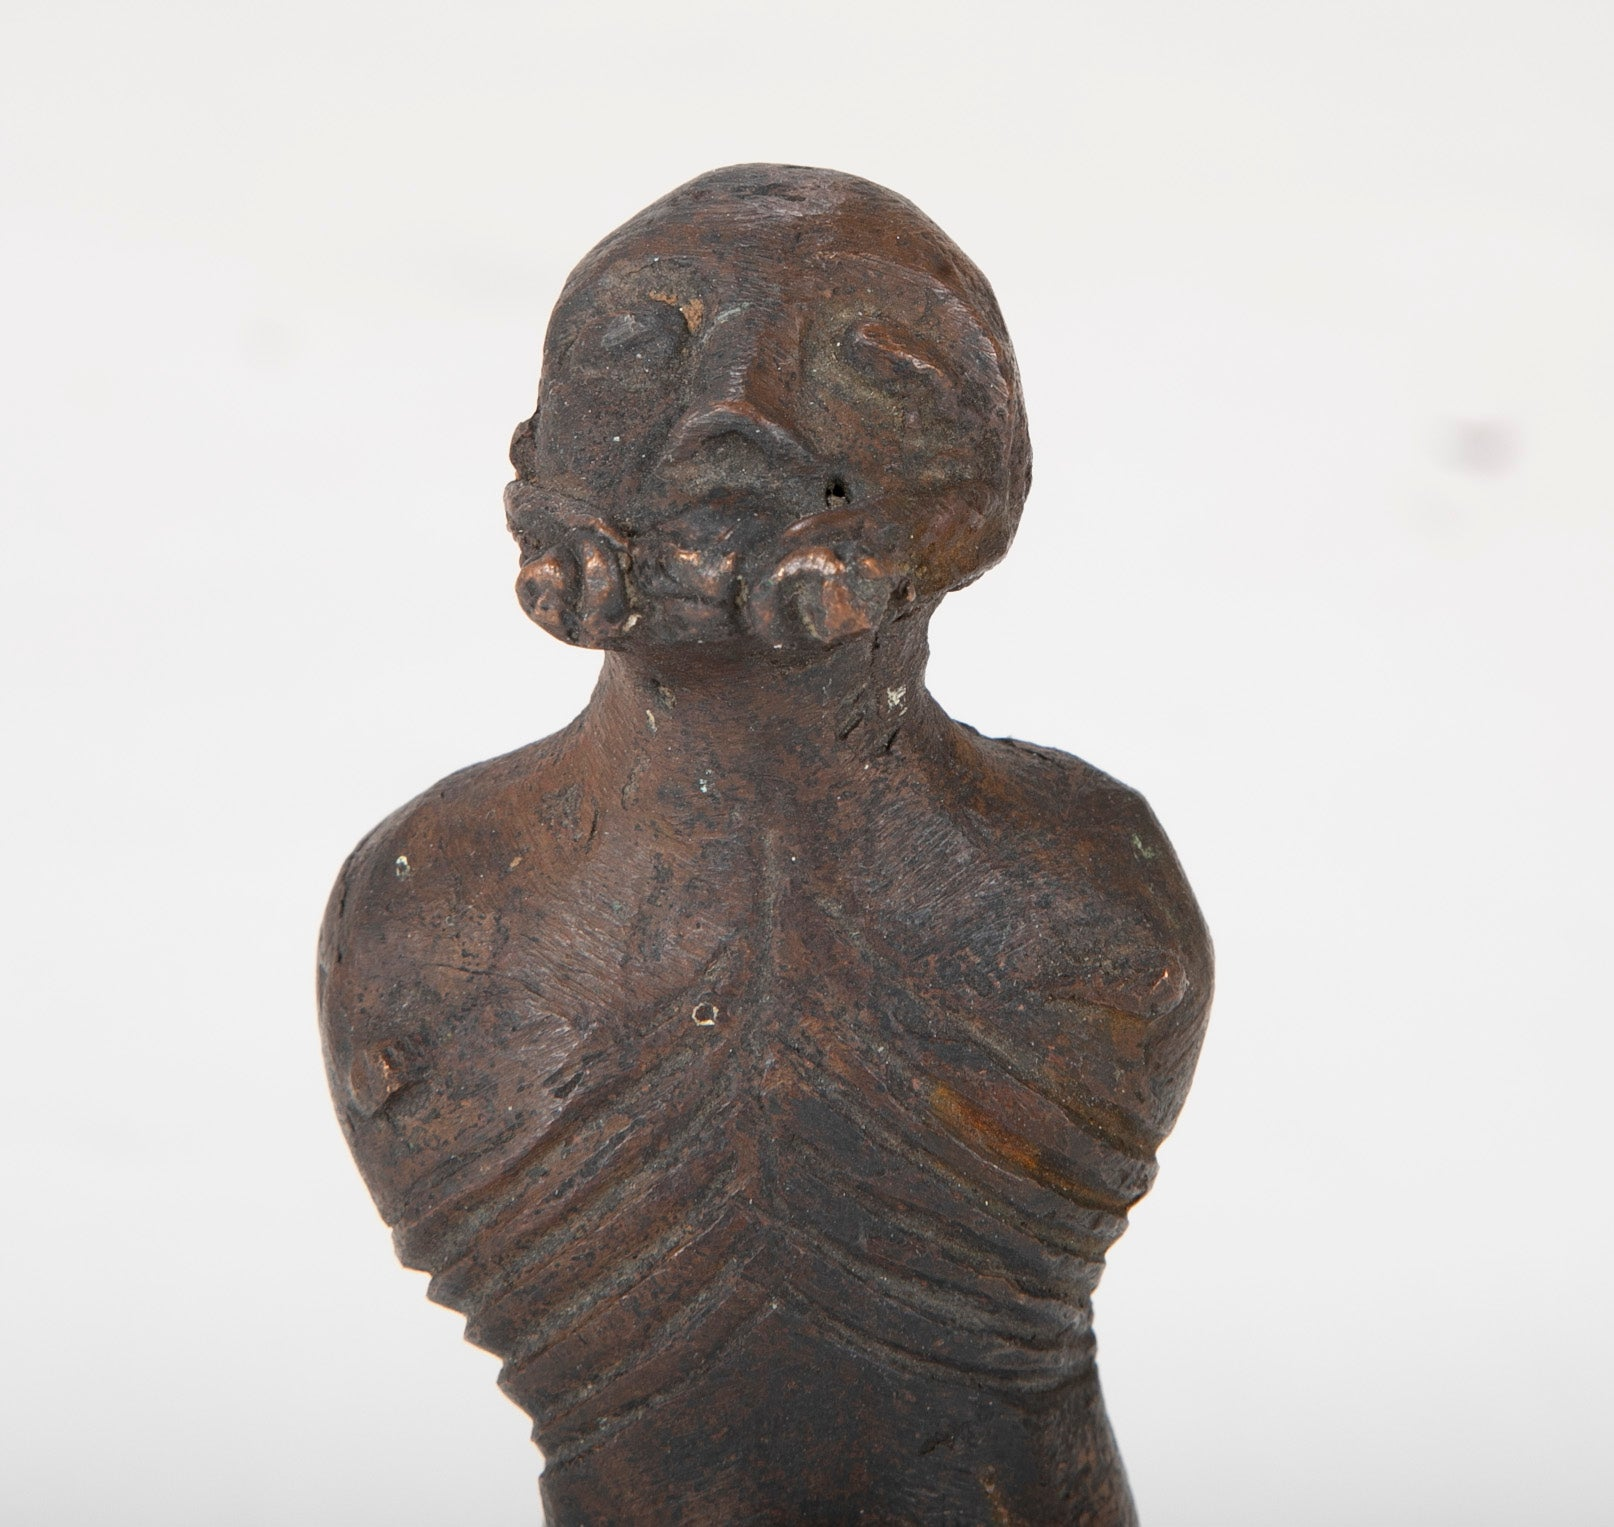 Fon Bronze Used In Religious Vodoo Ceremonies